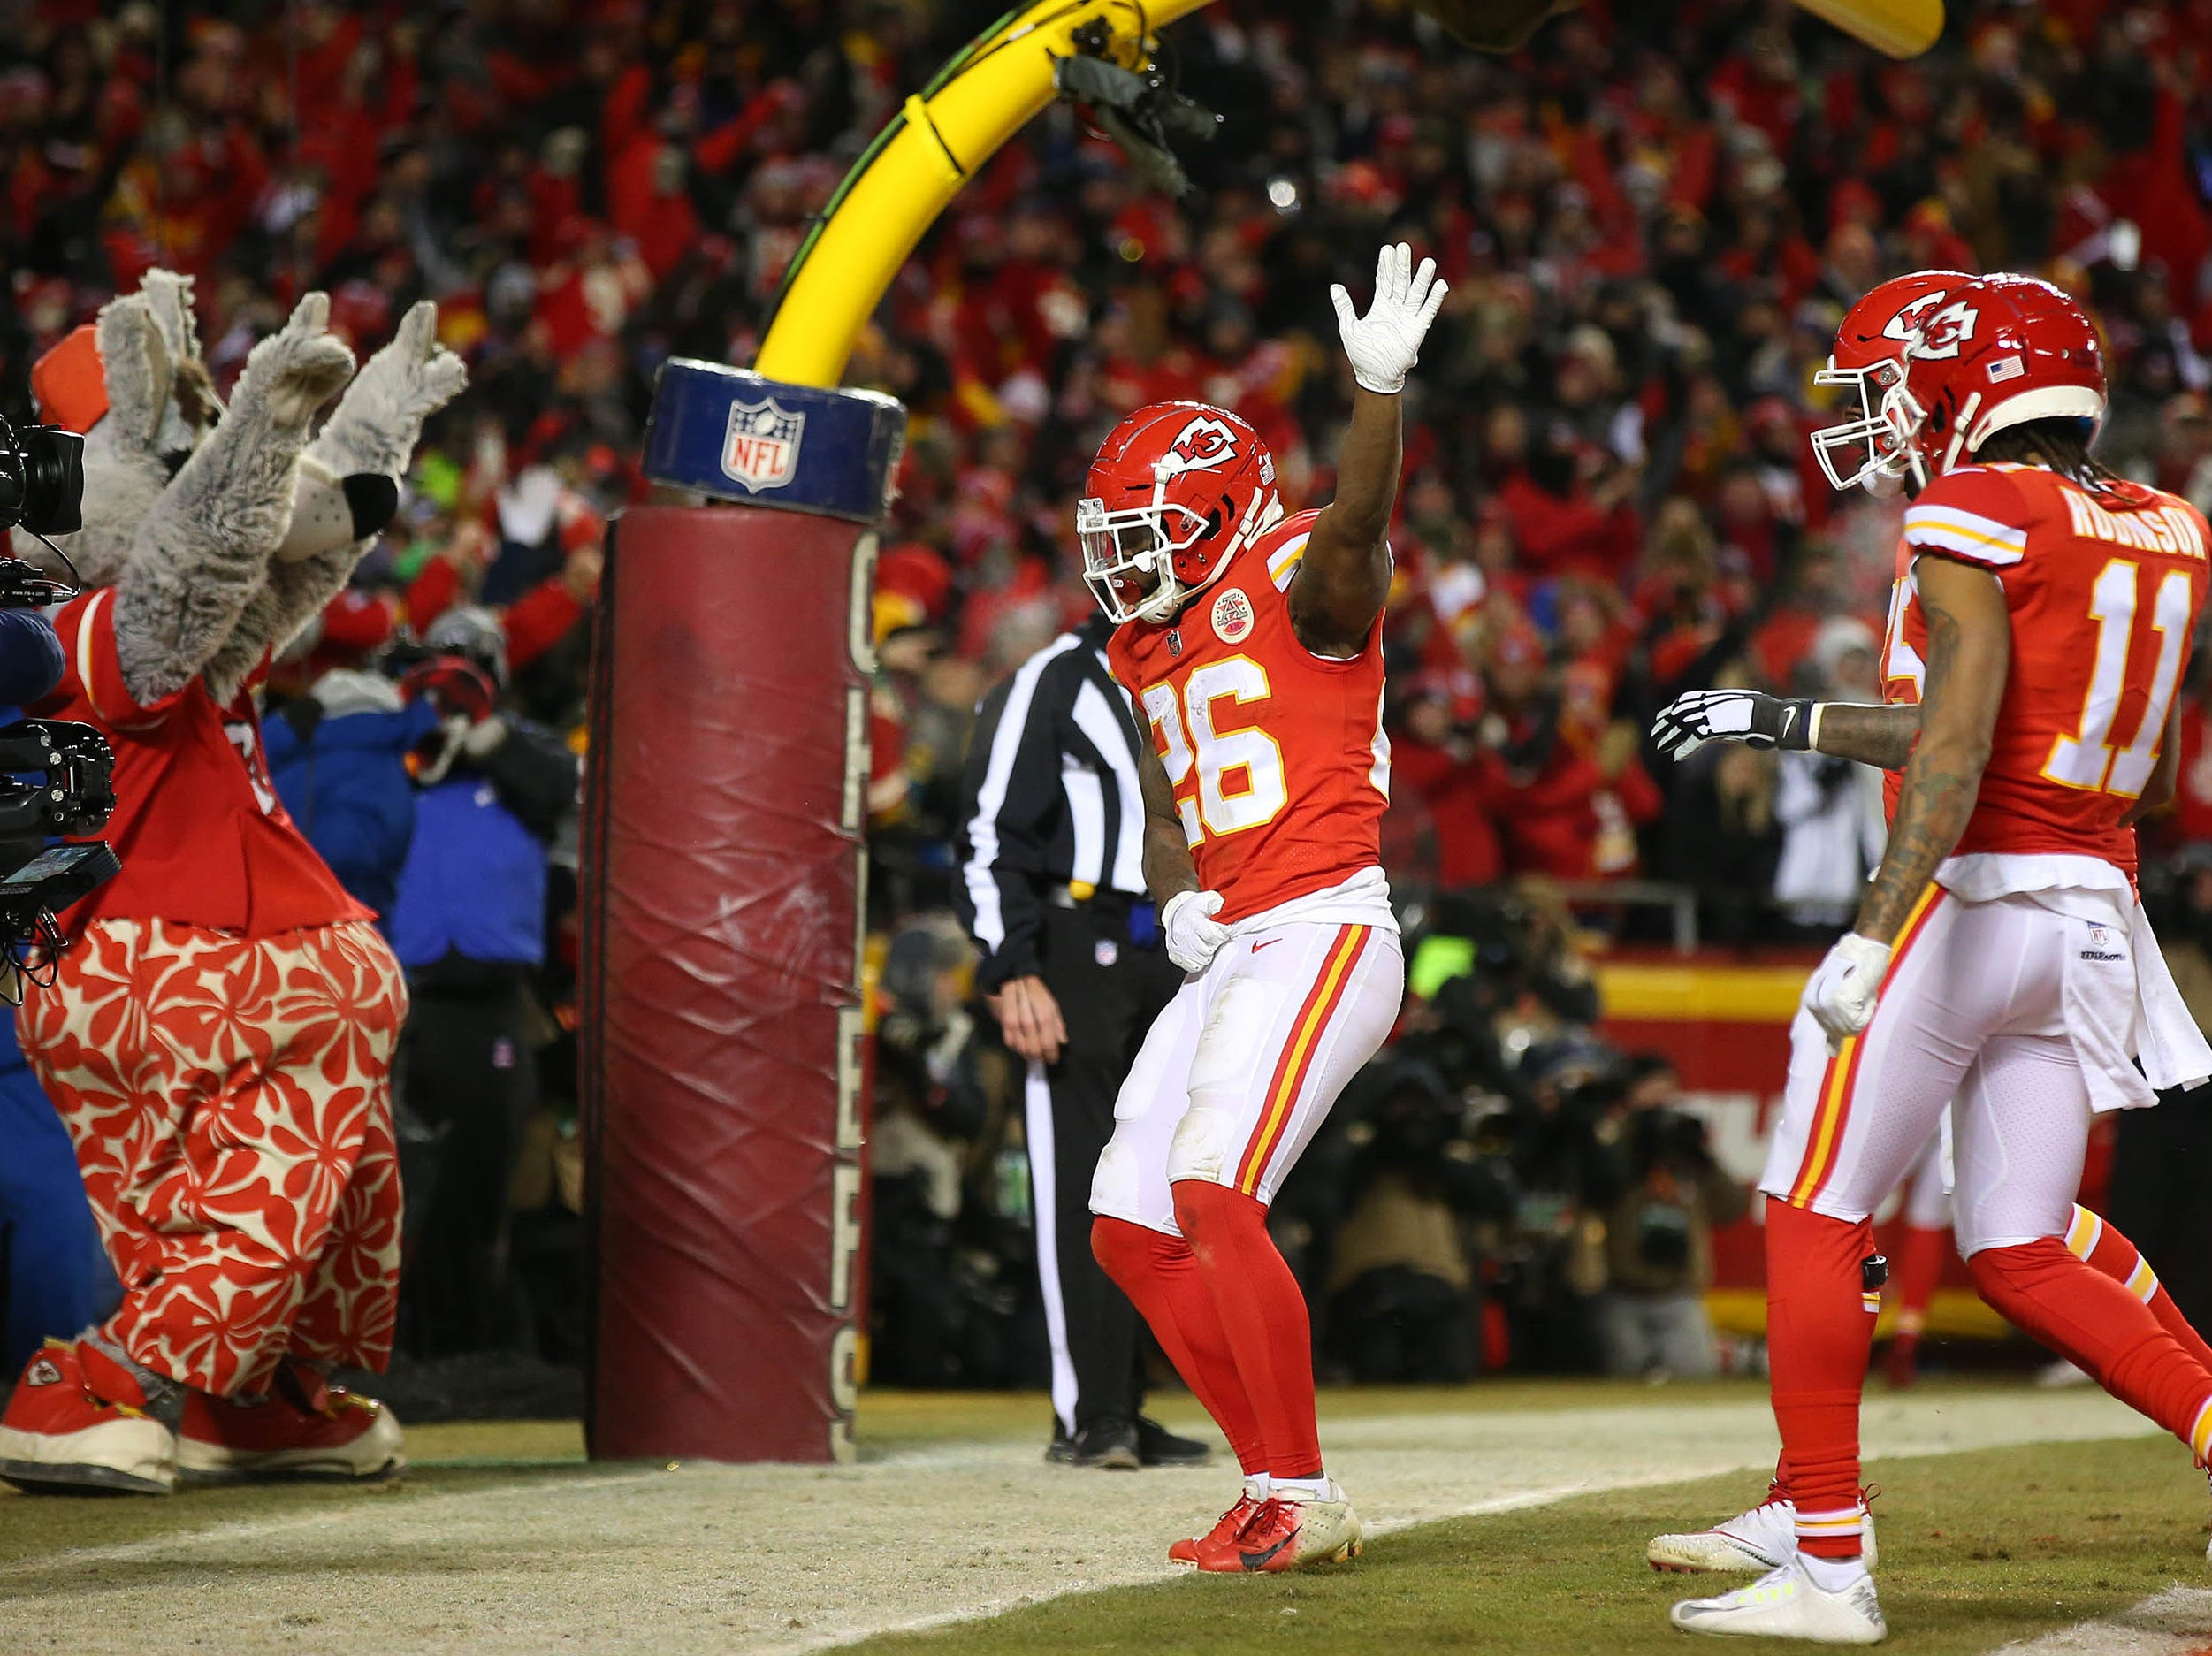 Kansas City Chiefs running back Damien Williams (26) celebrates after scoring a touchdown against the New England Patriots during the second half of the AFC Championship Game at Arrowhead Stadium.